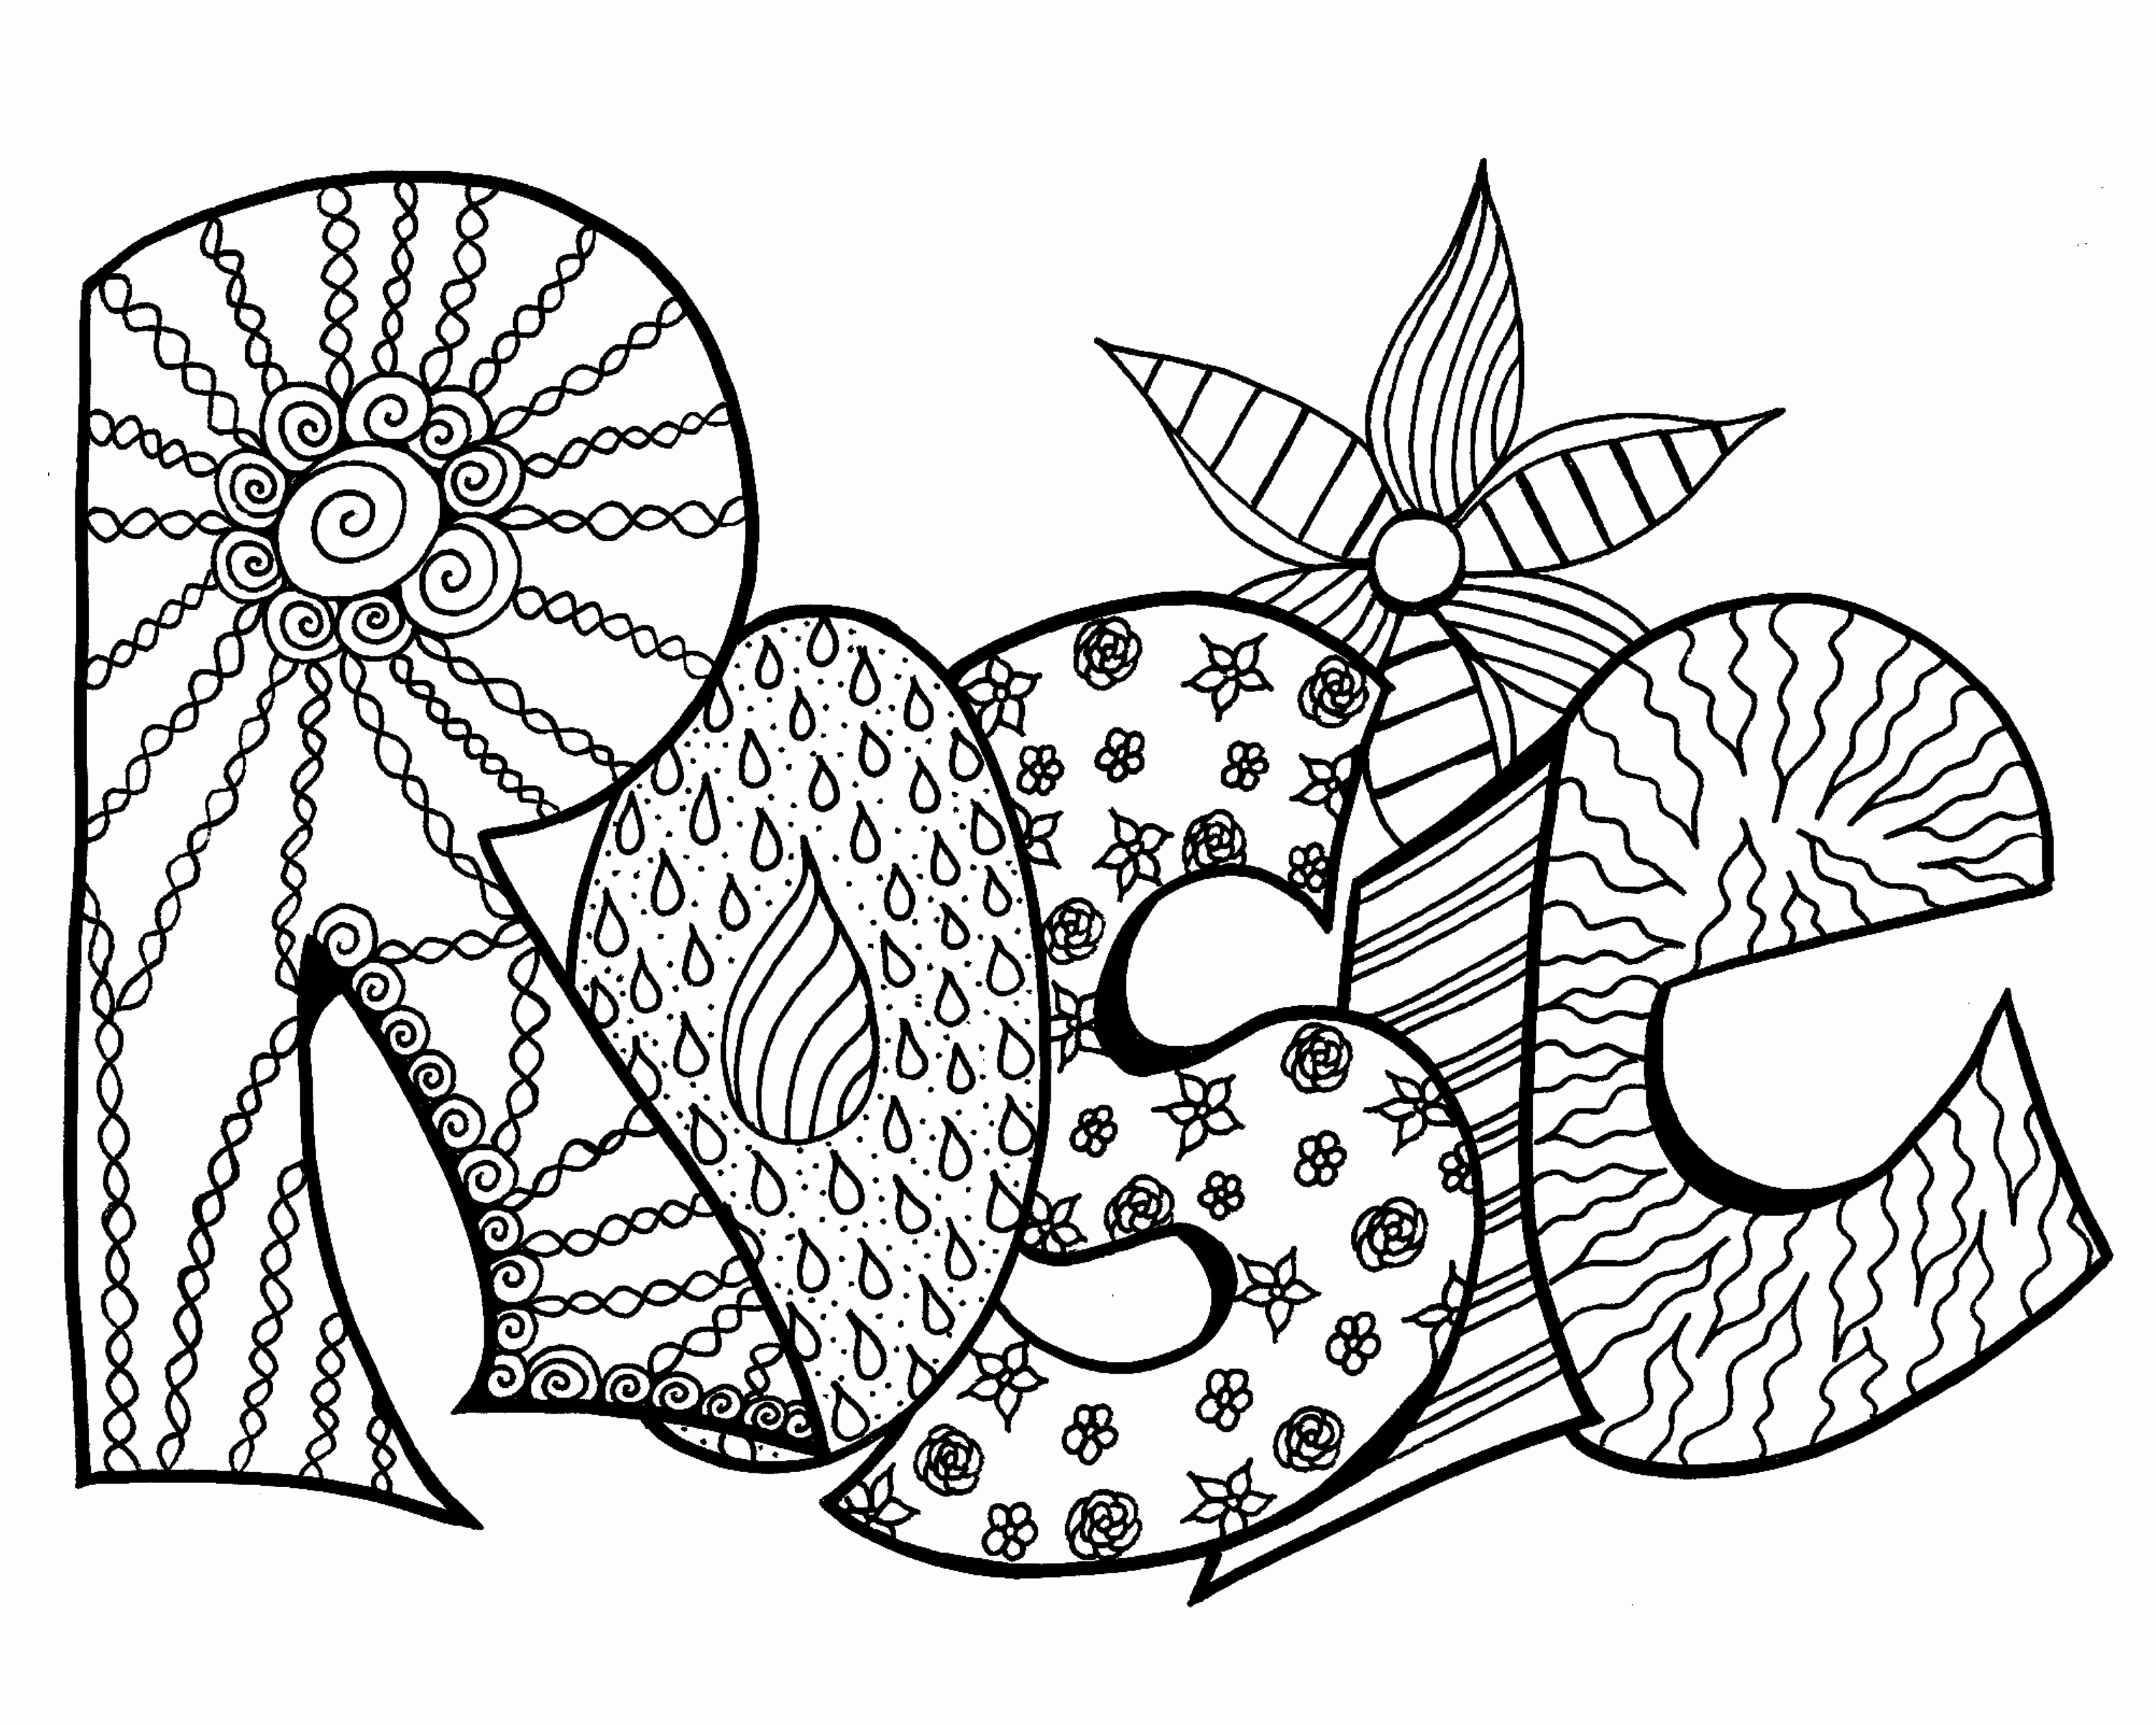 3000x2400 Make Your Own Coloring Pages With Your Name On It Beautiful